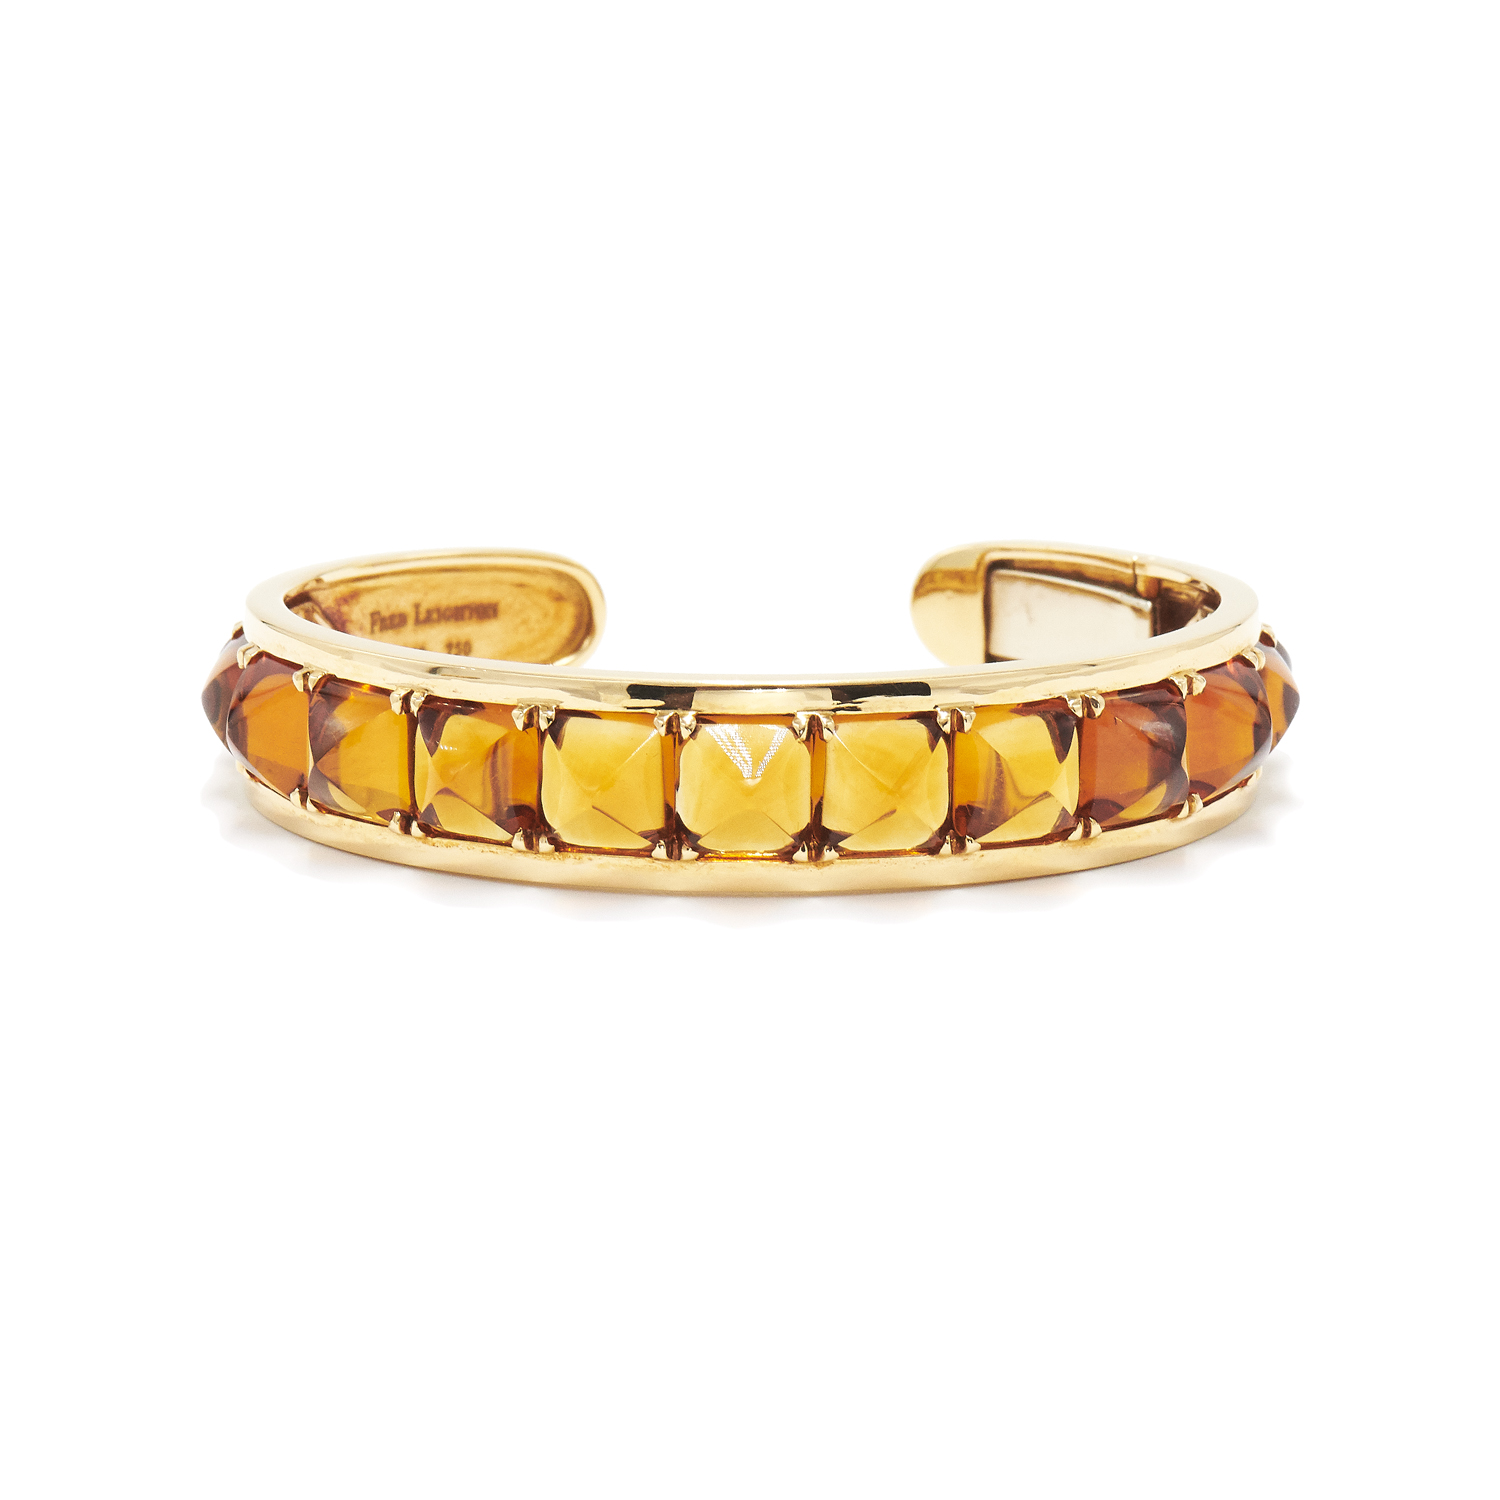 Signed Fred Leighton 18K Yellow Gold Sugarloaf Citrine Cuff Style B-1040FL-0-CIT-18KY